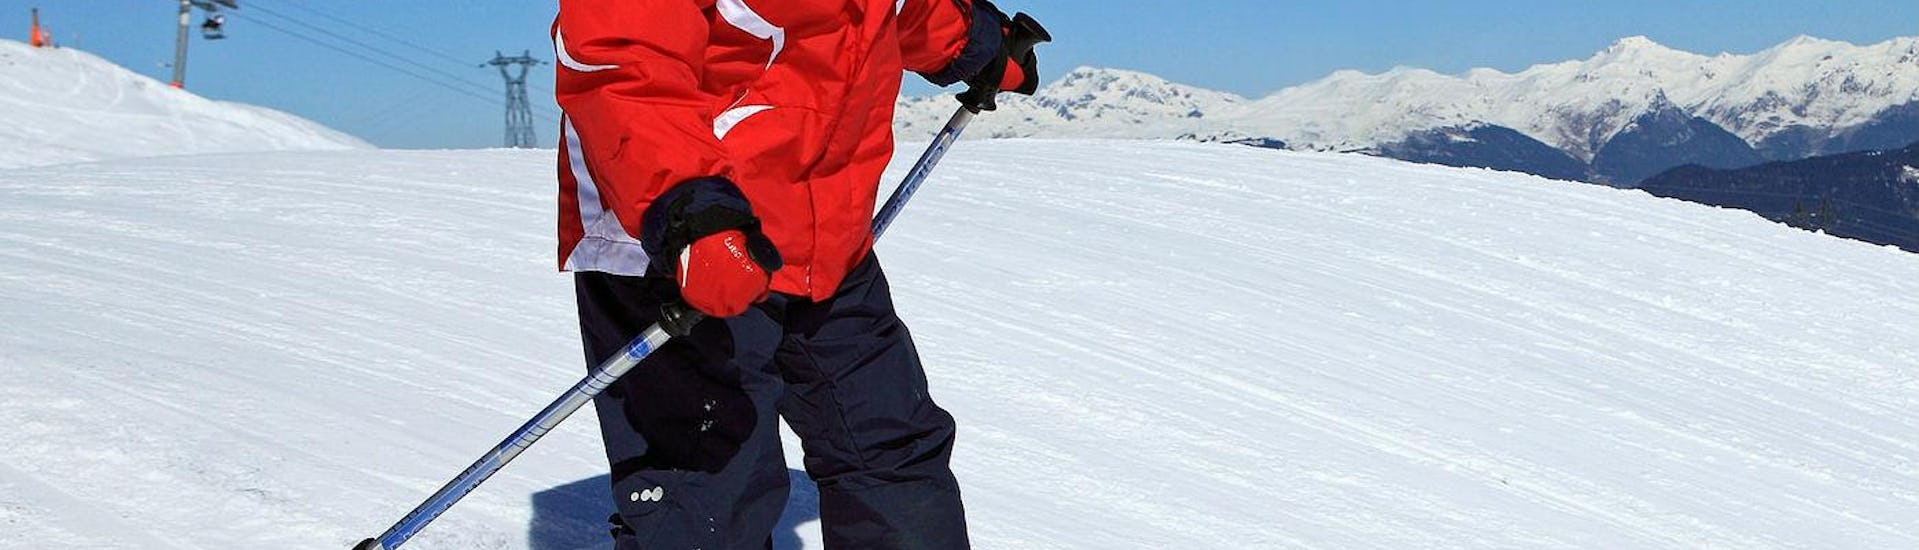 Ski Instructor Private for Kids - High Season - All Levels